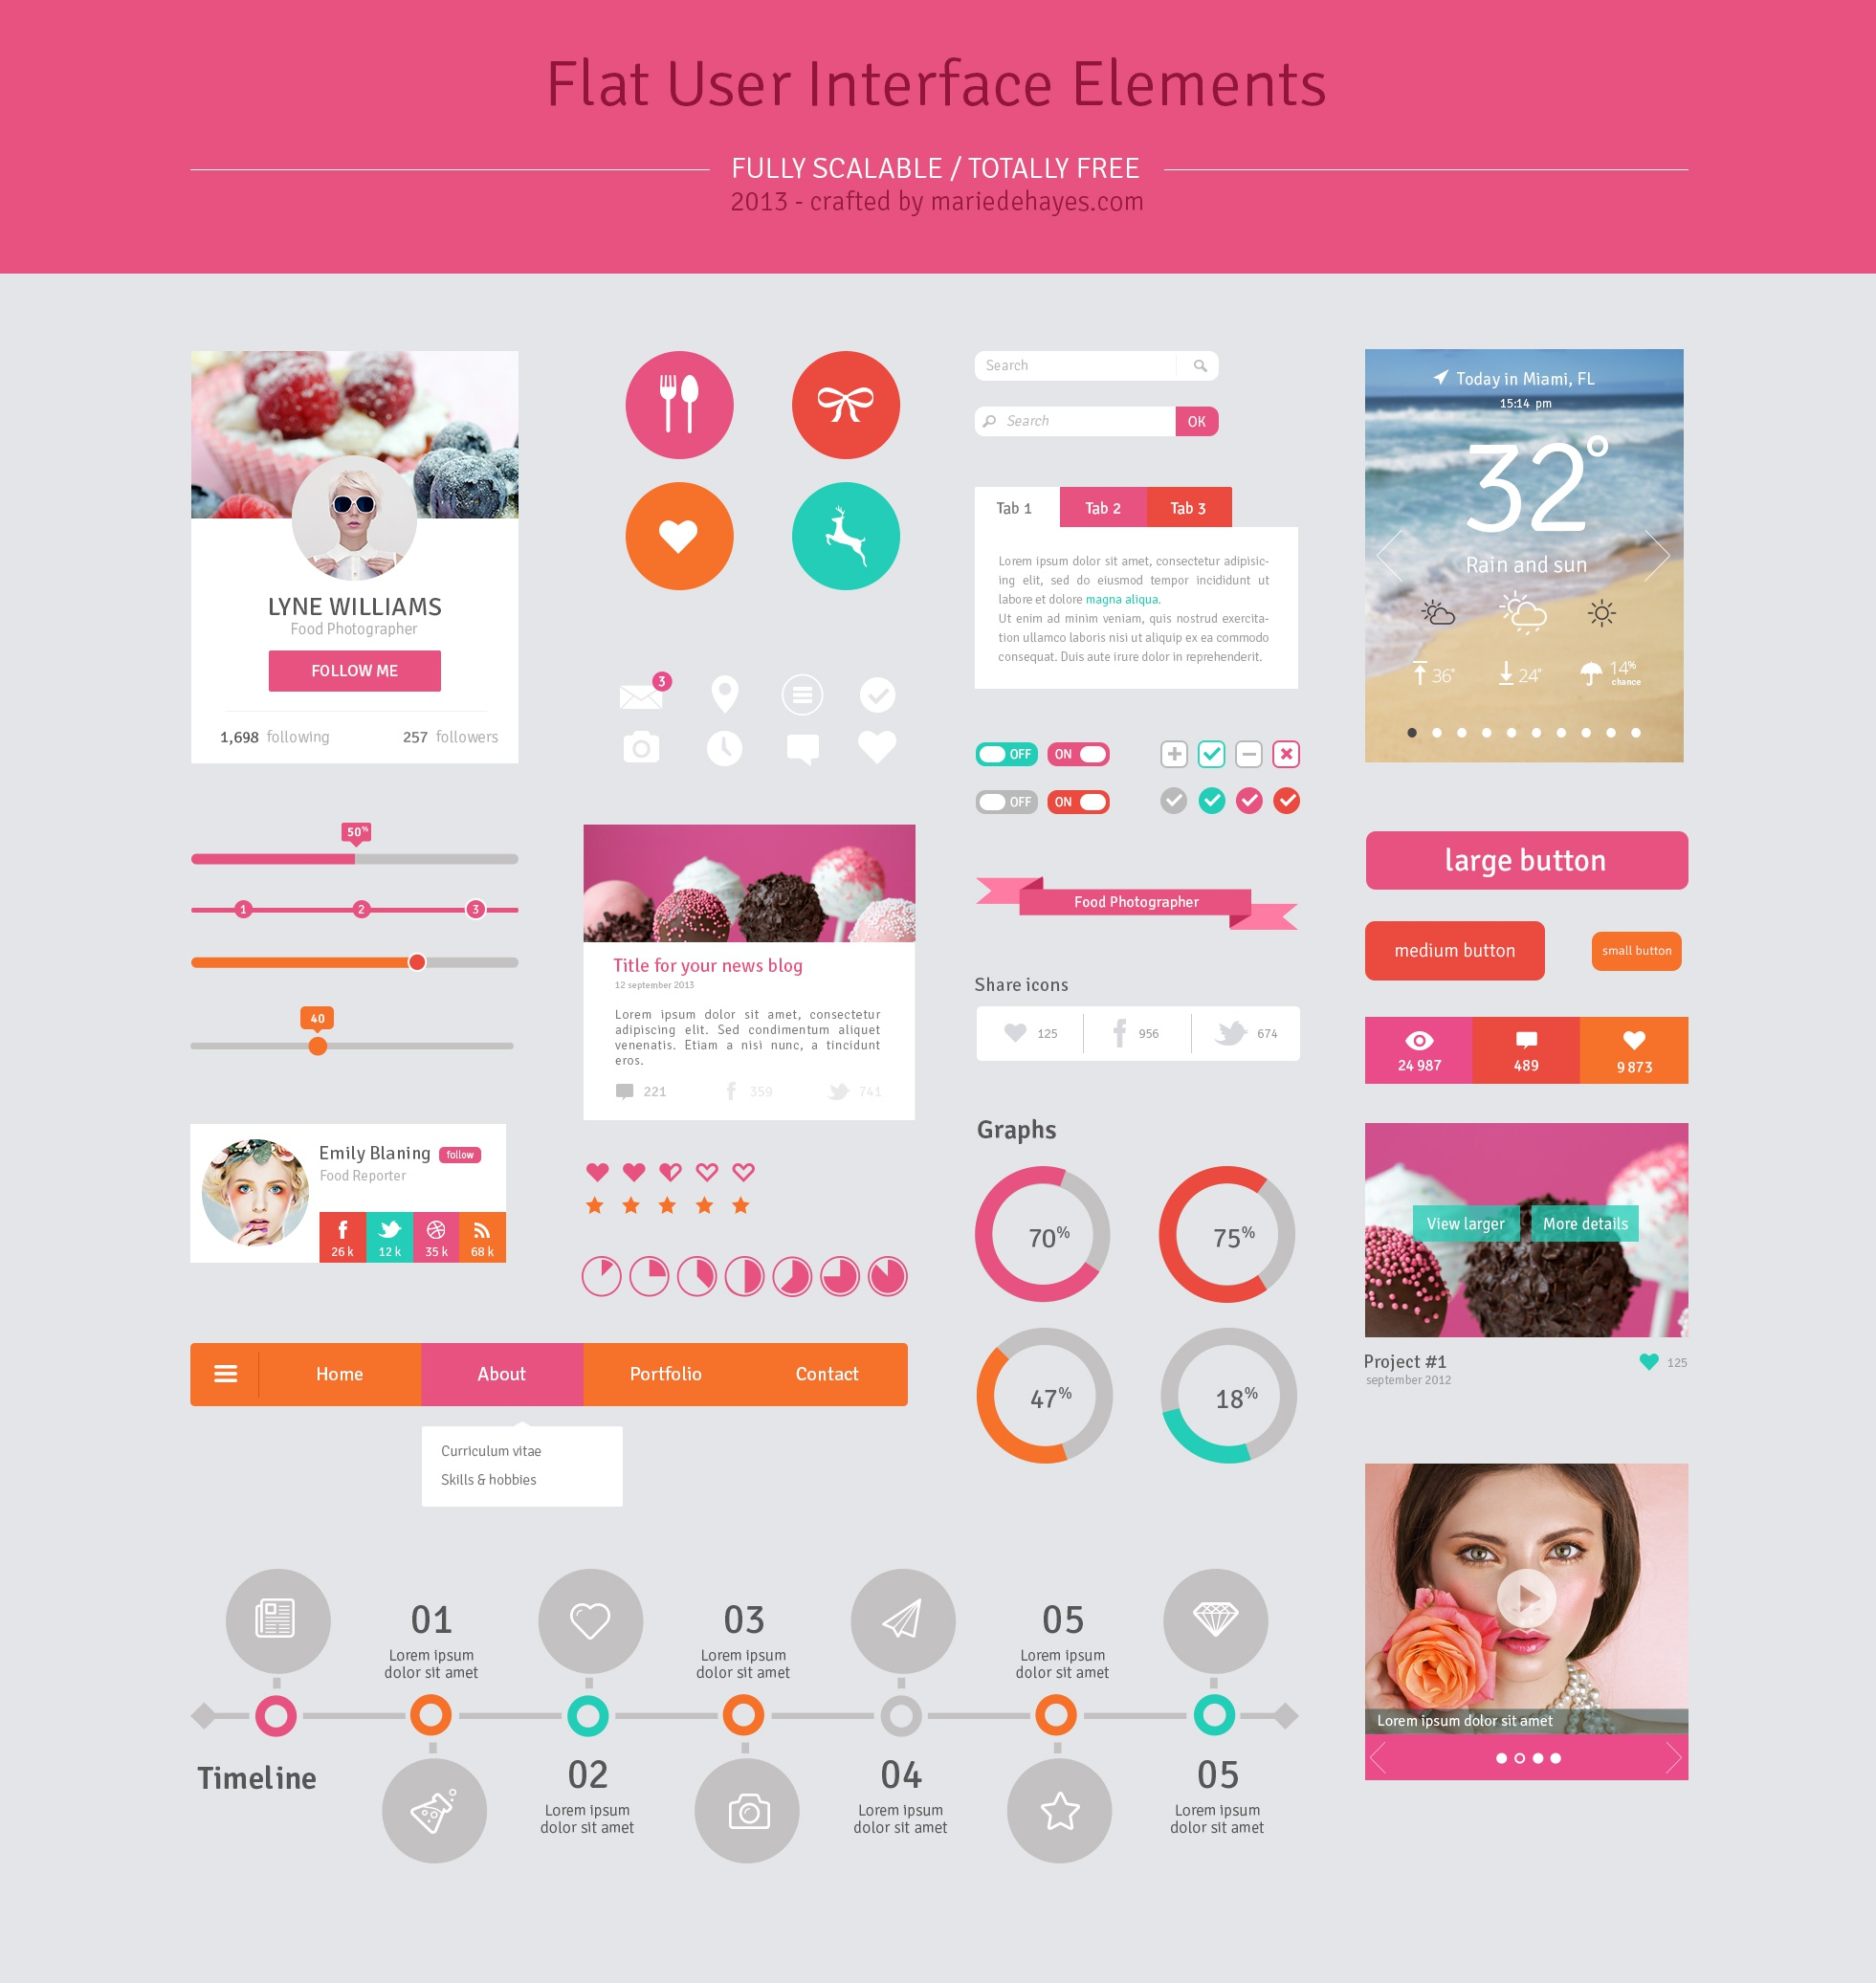 Ui flat design elements rp